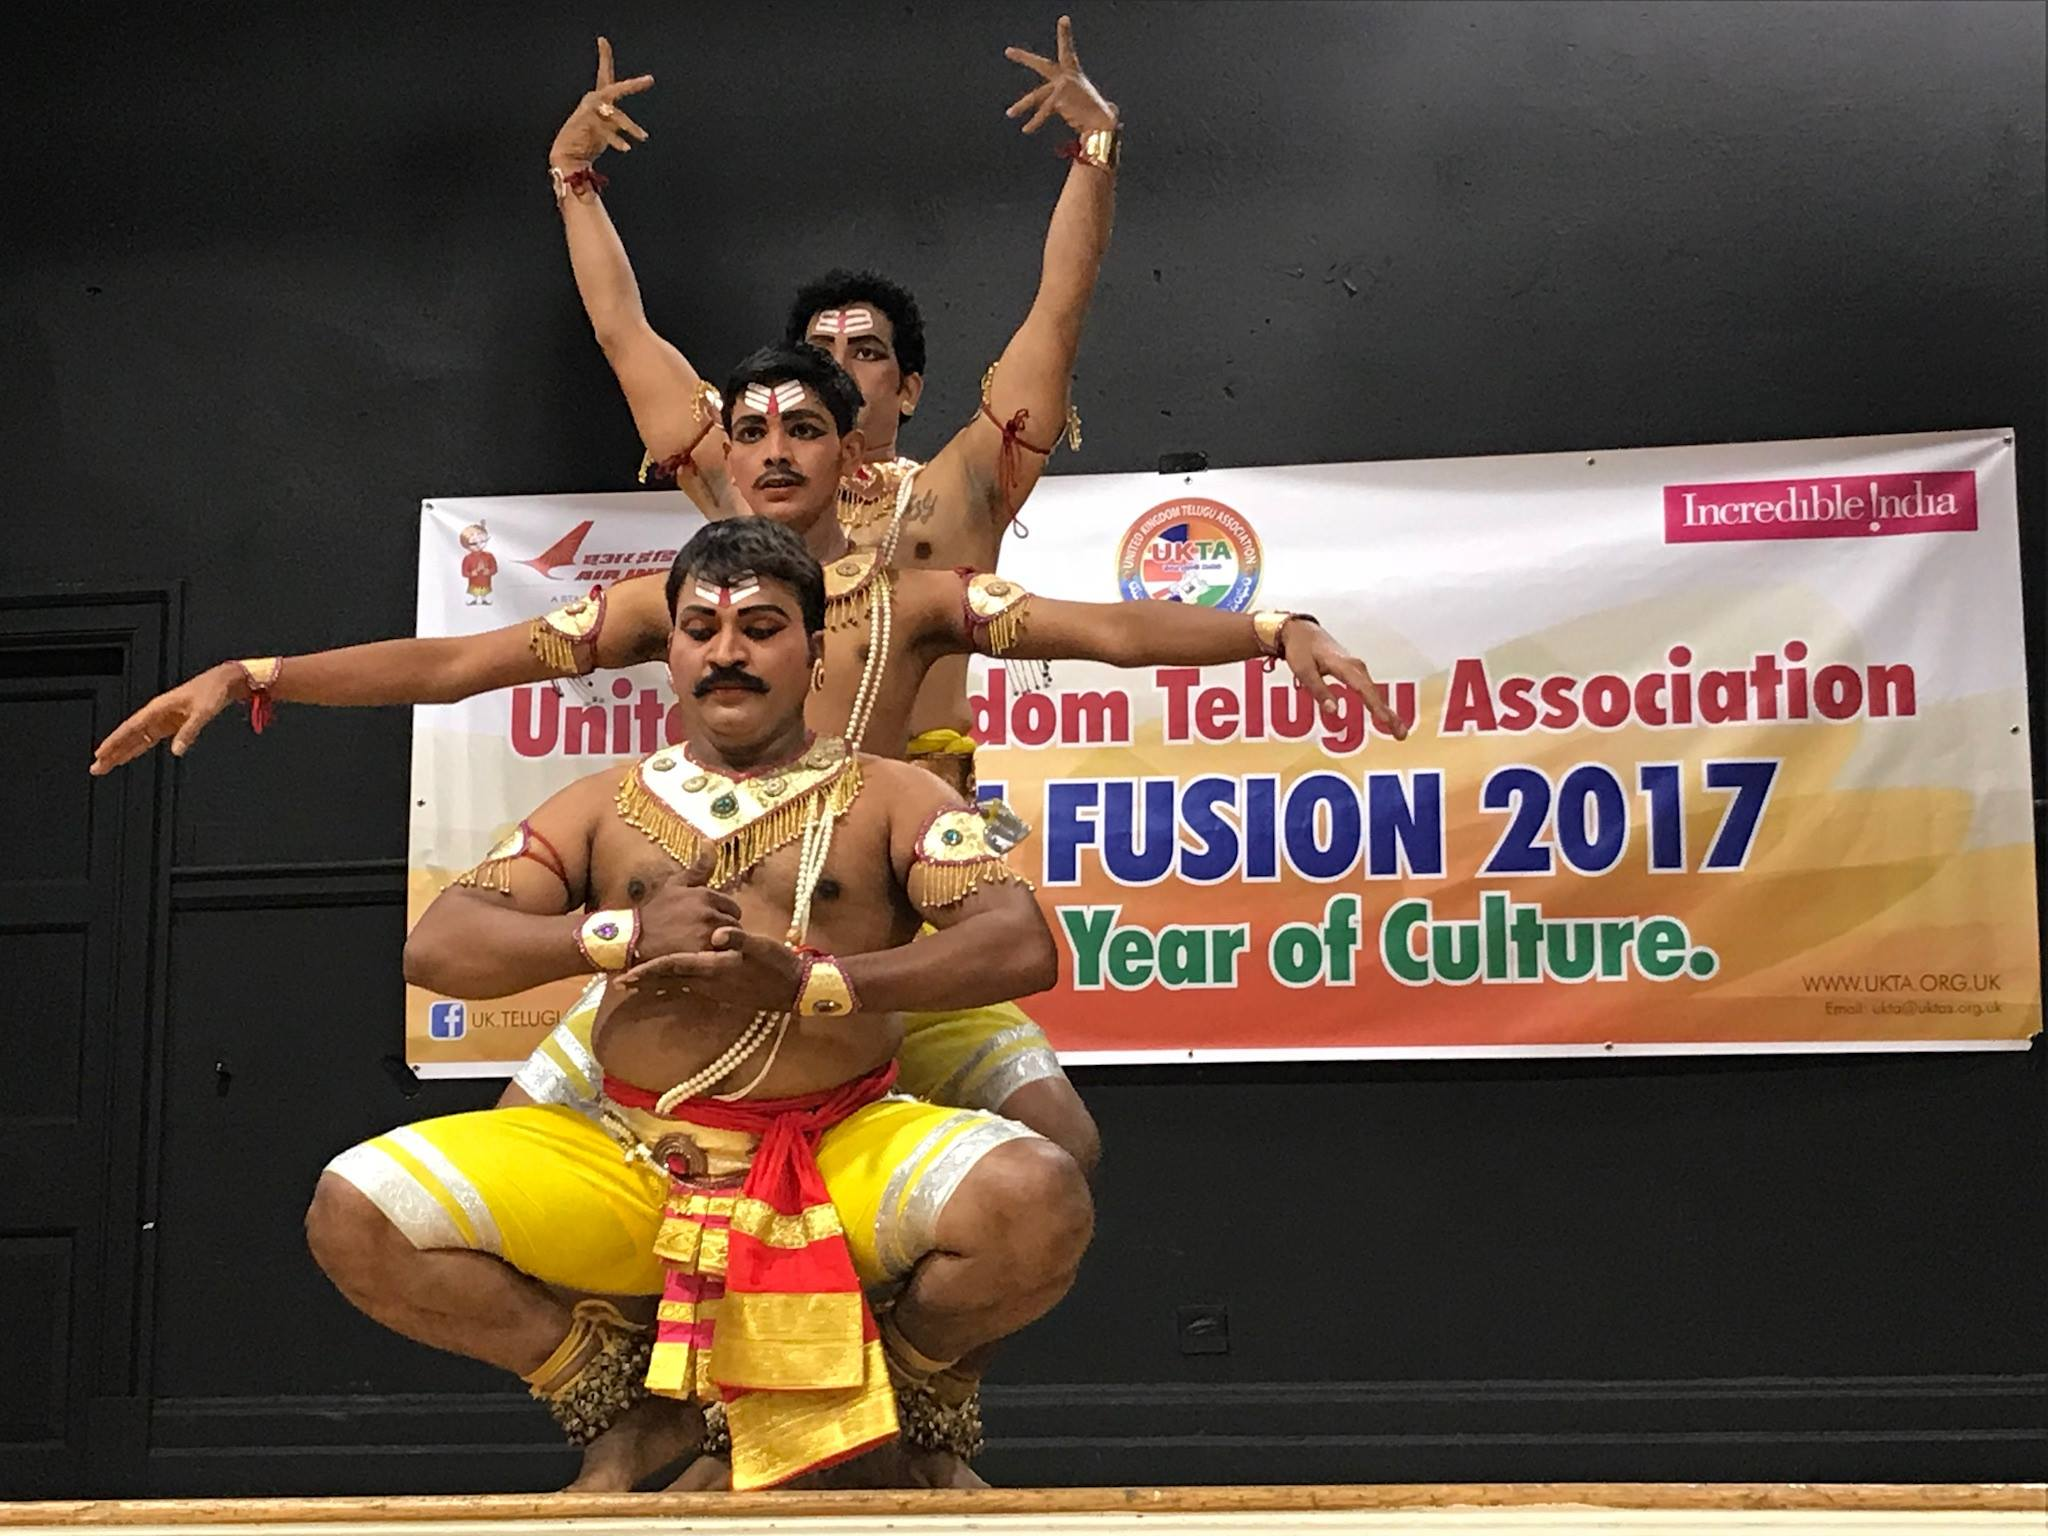 ukta's indian fusion 2017 @ leicester